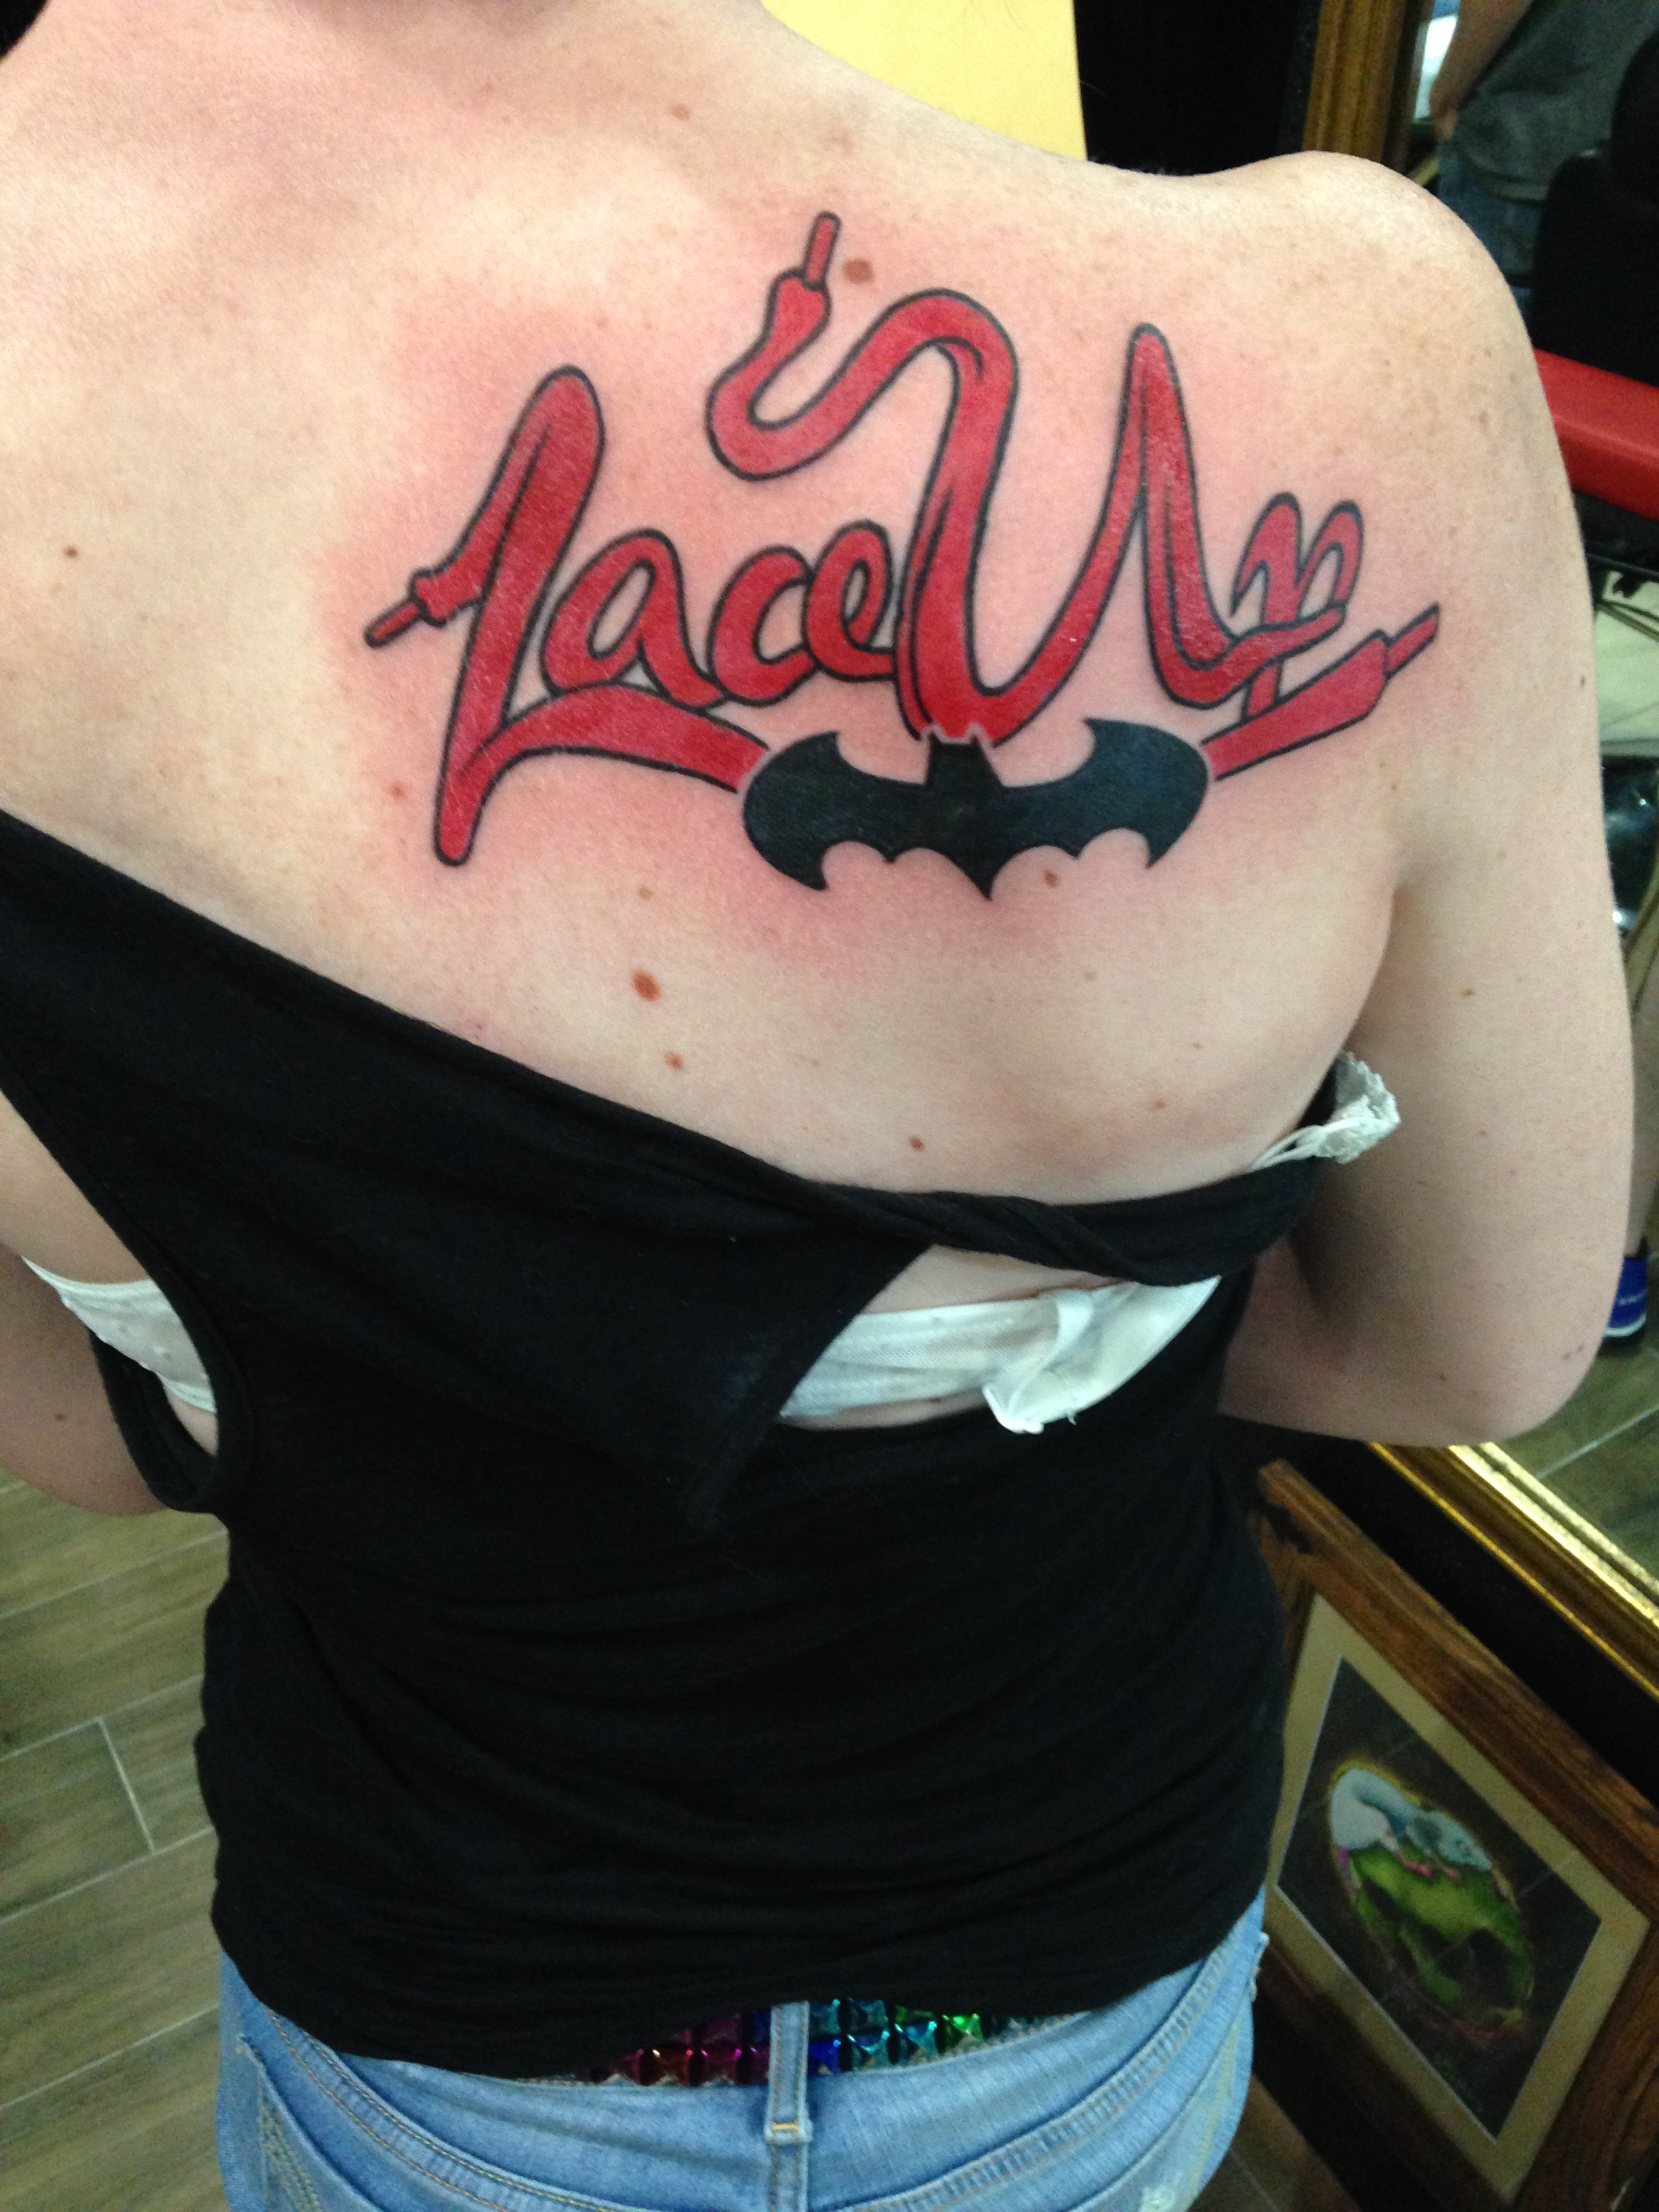 Lace Up Mgk Tattoo